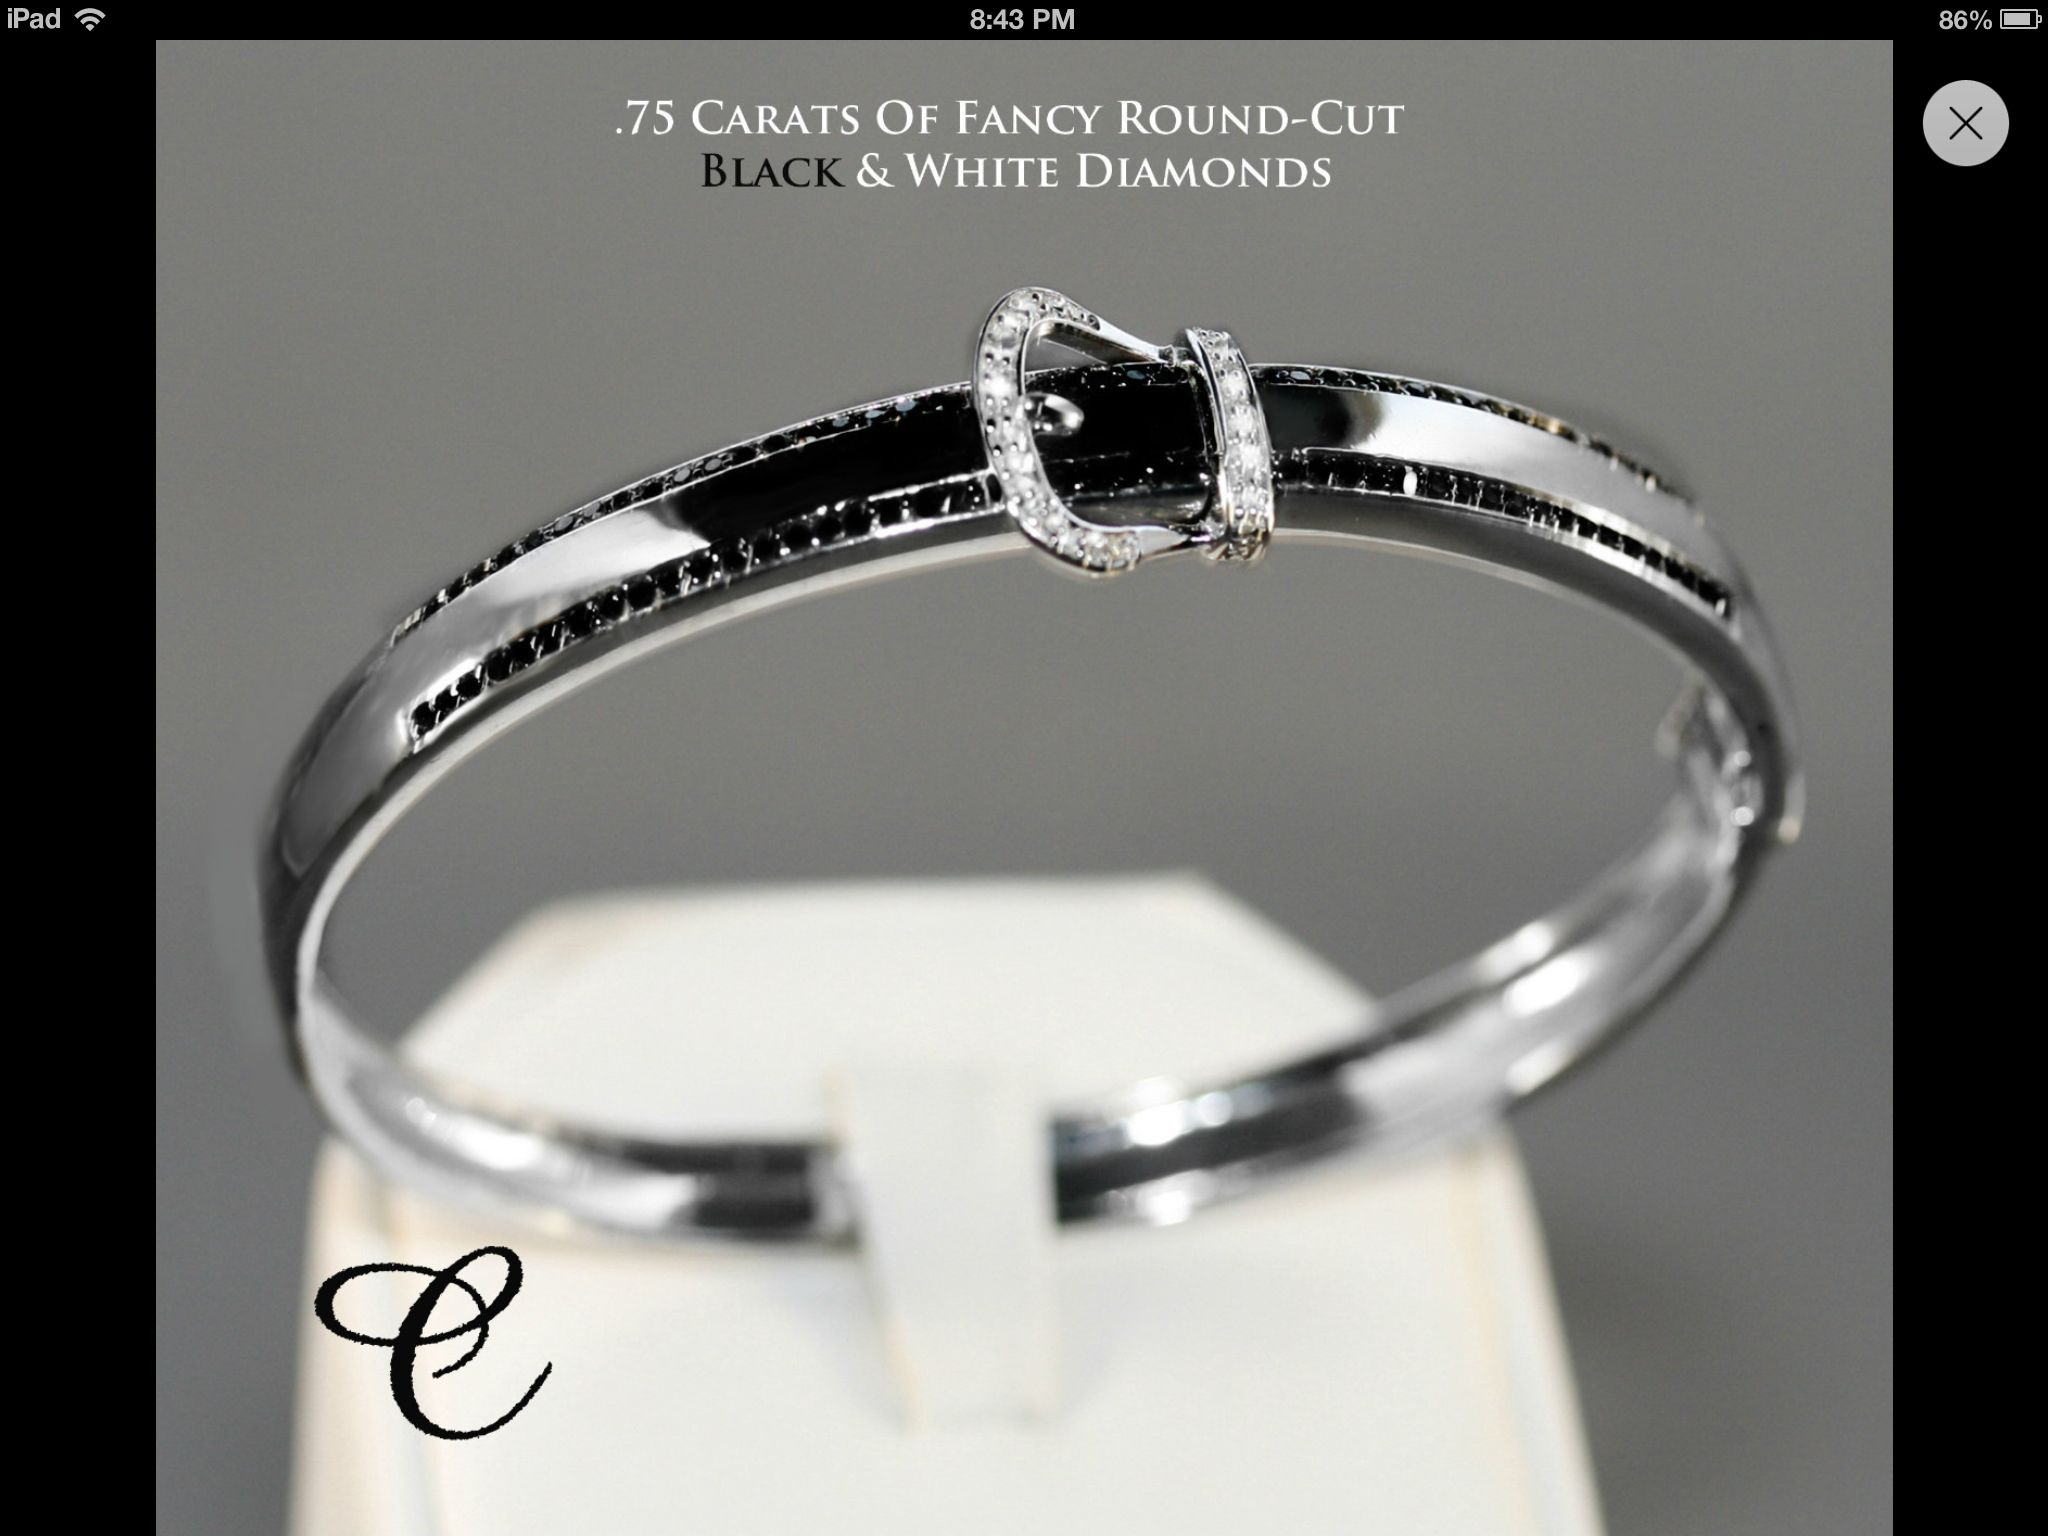 Brand new sterling silver carat black and white diamond buckle